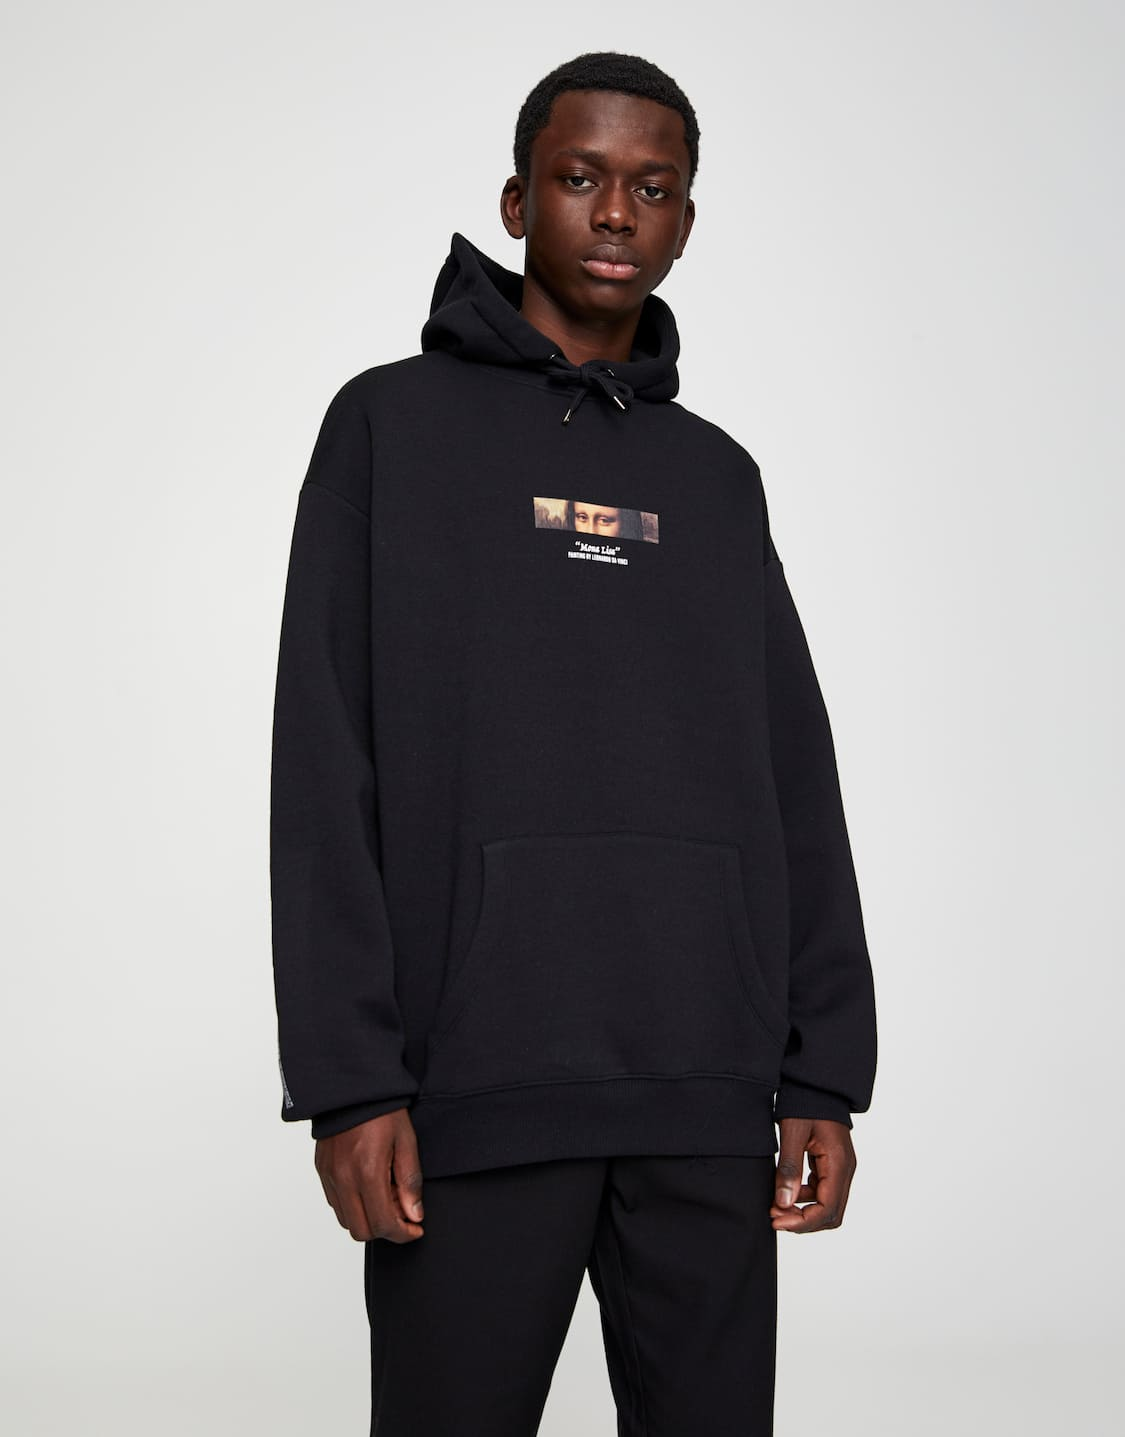 sweat shirt homme pull and bear